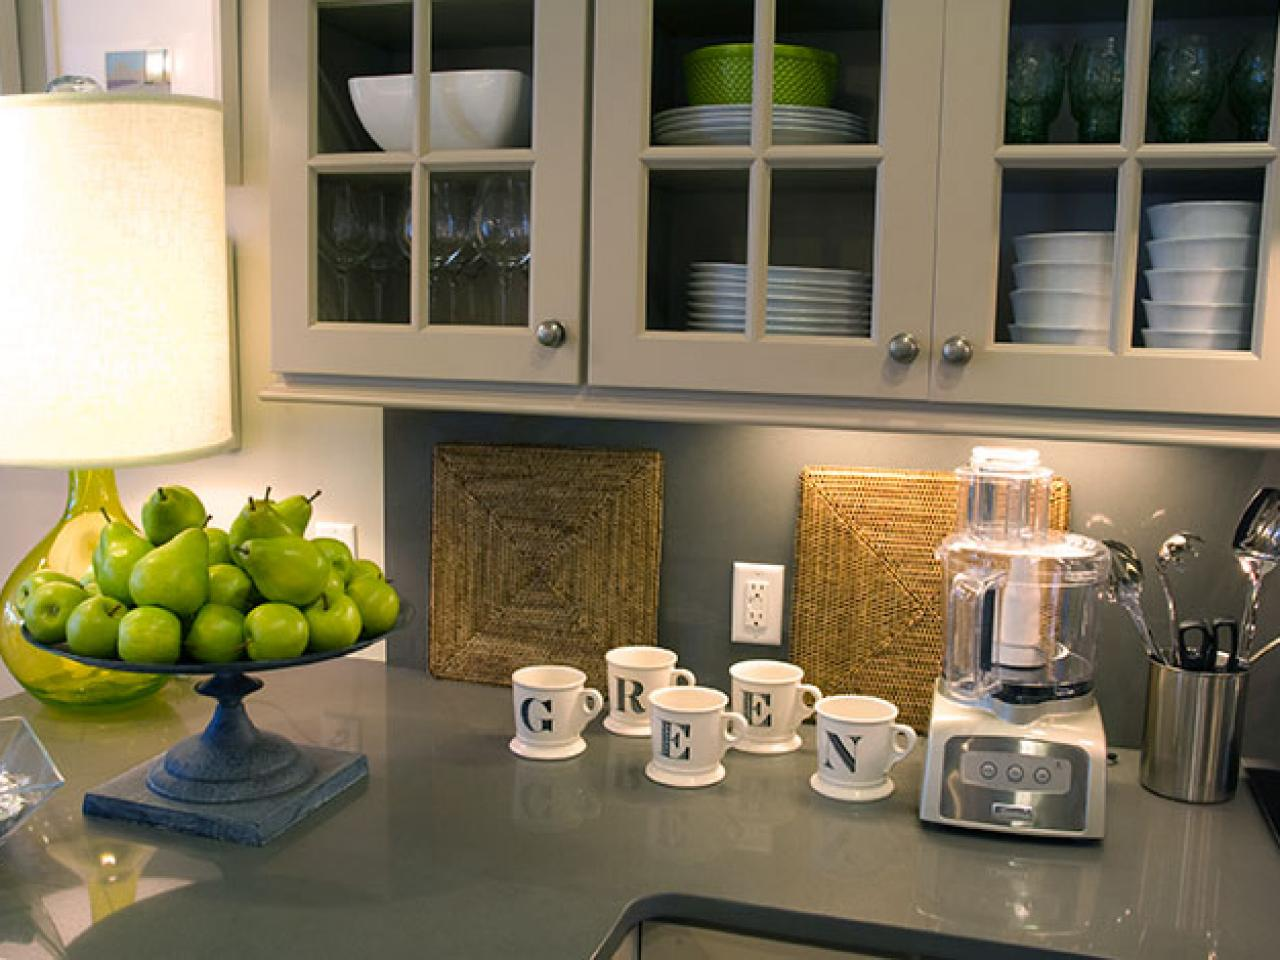 Eco friendly decorating ideas hgtv for Kitchen counter decor